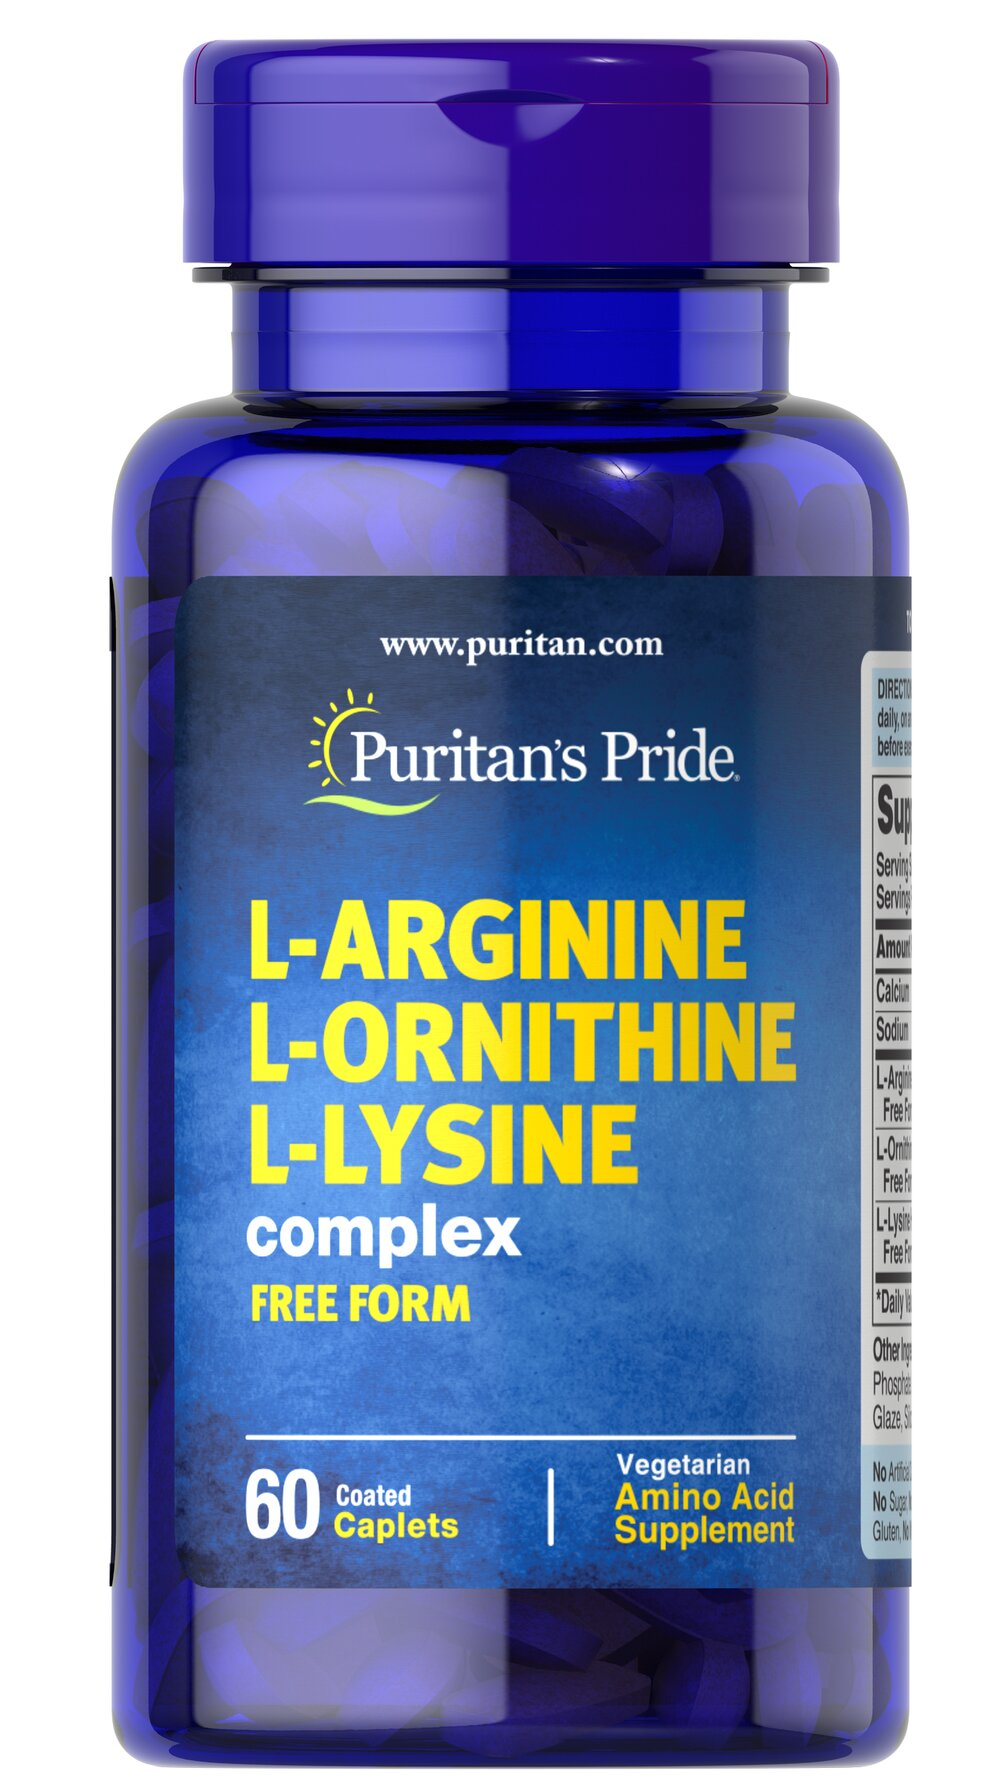 L-Arginine L-Ornithine L-Lysine Thumbnail Alternate Bottle View